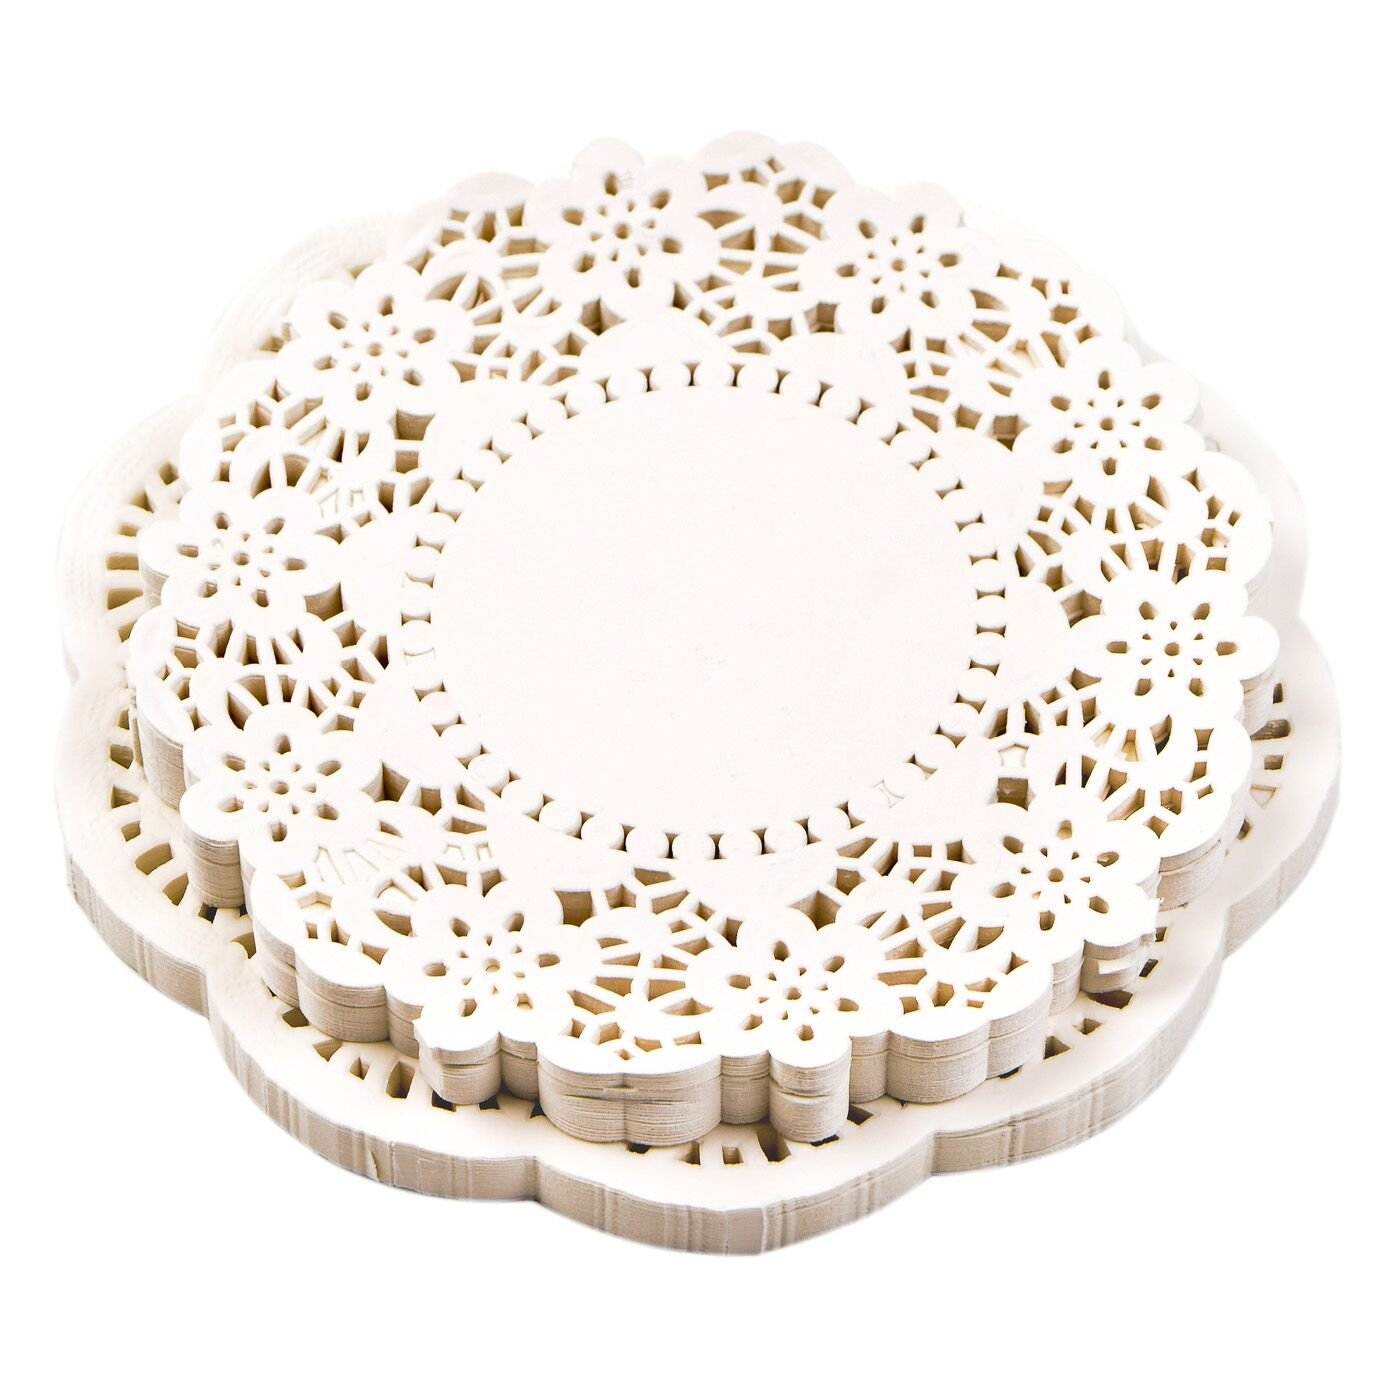 NOVSIX Doilies Paper Lace Cake Packaging Paper Pad White Color SET of 300 PCS